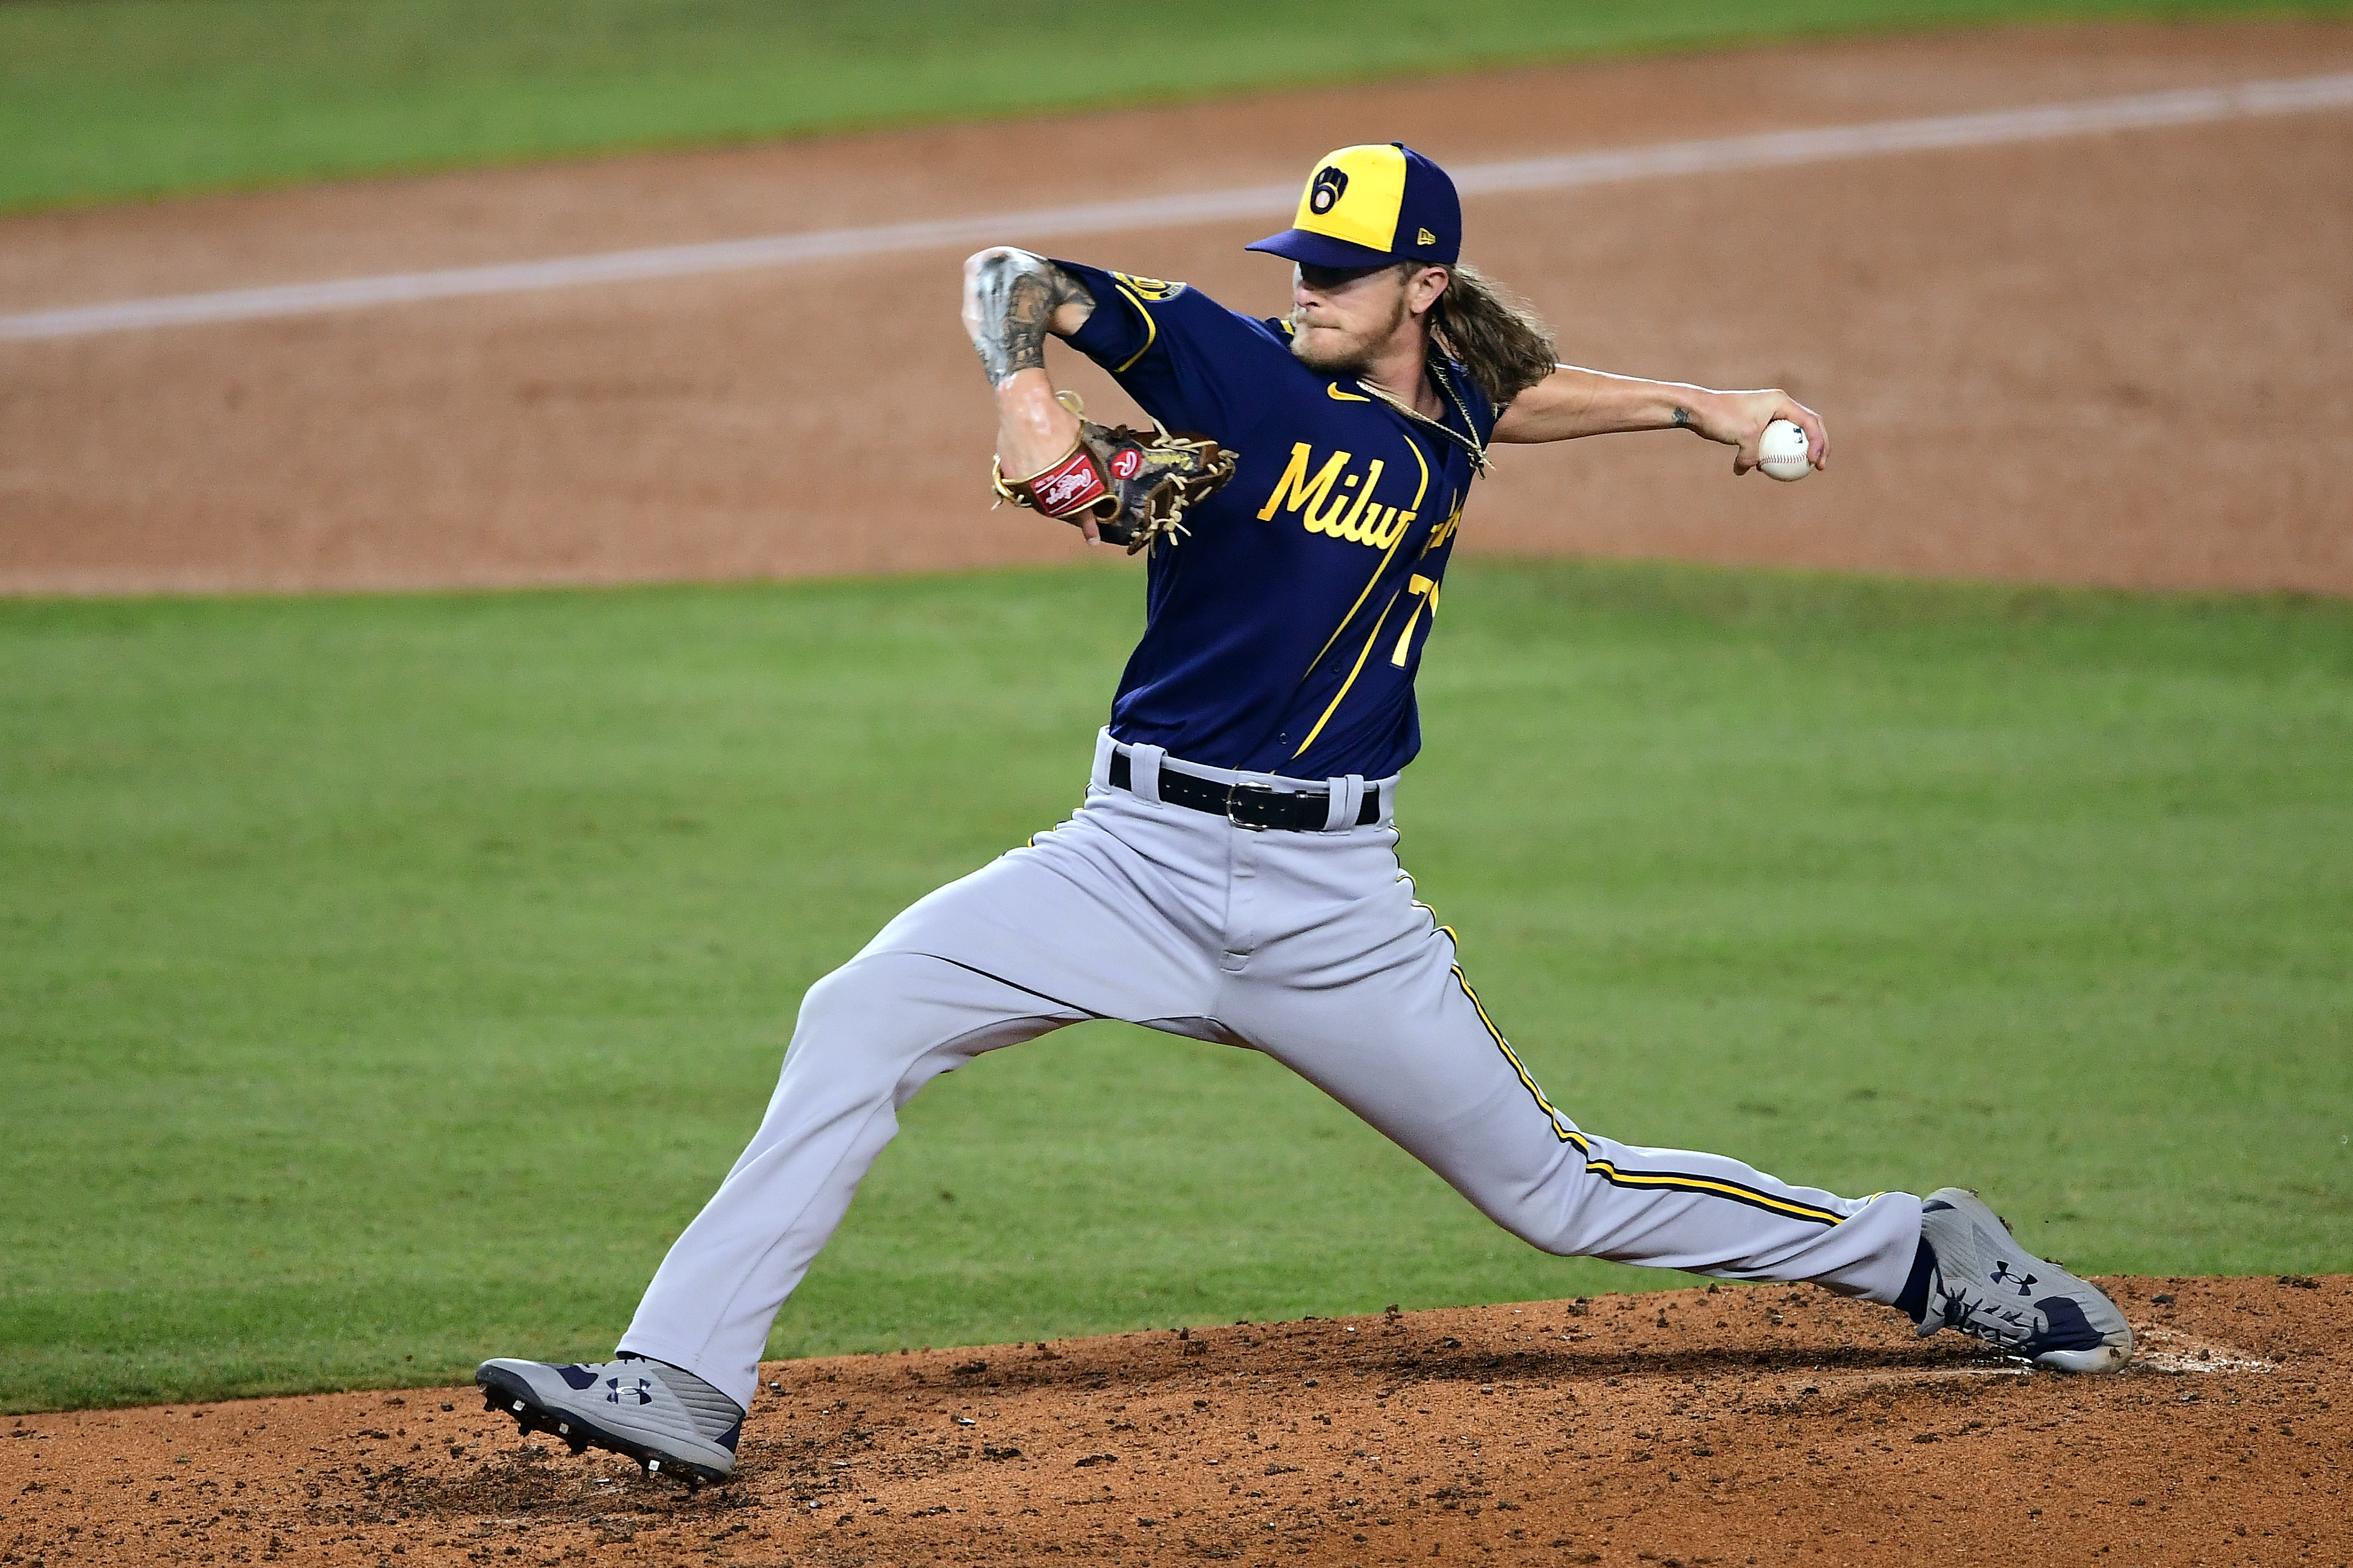 Josh Hader #71 of the Milwaukee Brewers pitches during Game 2 of the Wild Card Series between the Milwaukee Brewers and the Los Angeles Dodgers at Dodger Stadium on Thursday, October 1, 2020 in Los Angeles, California.